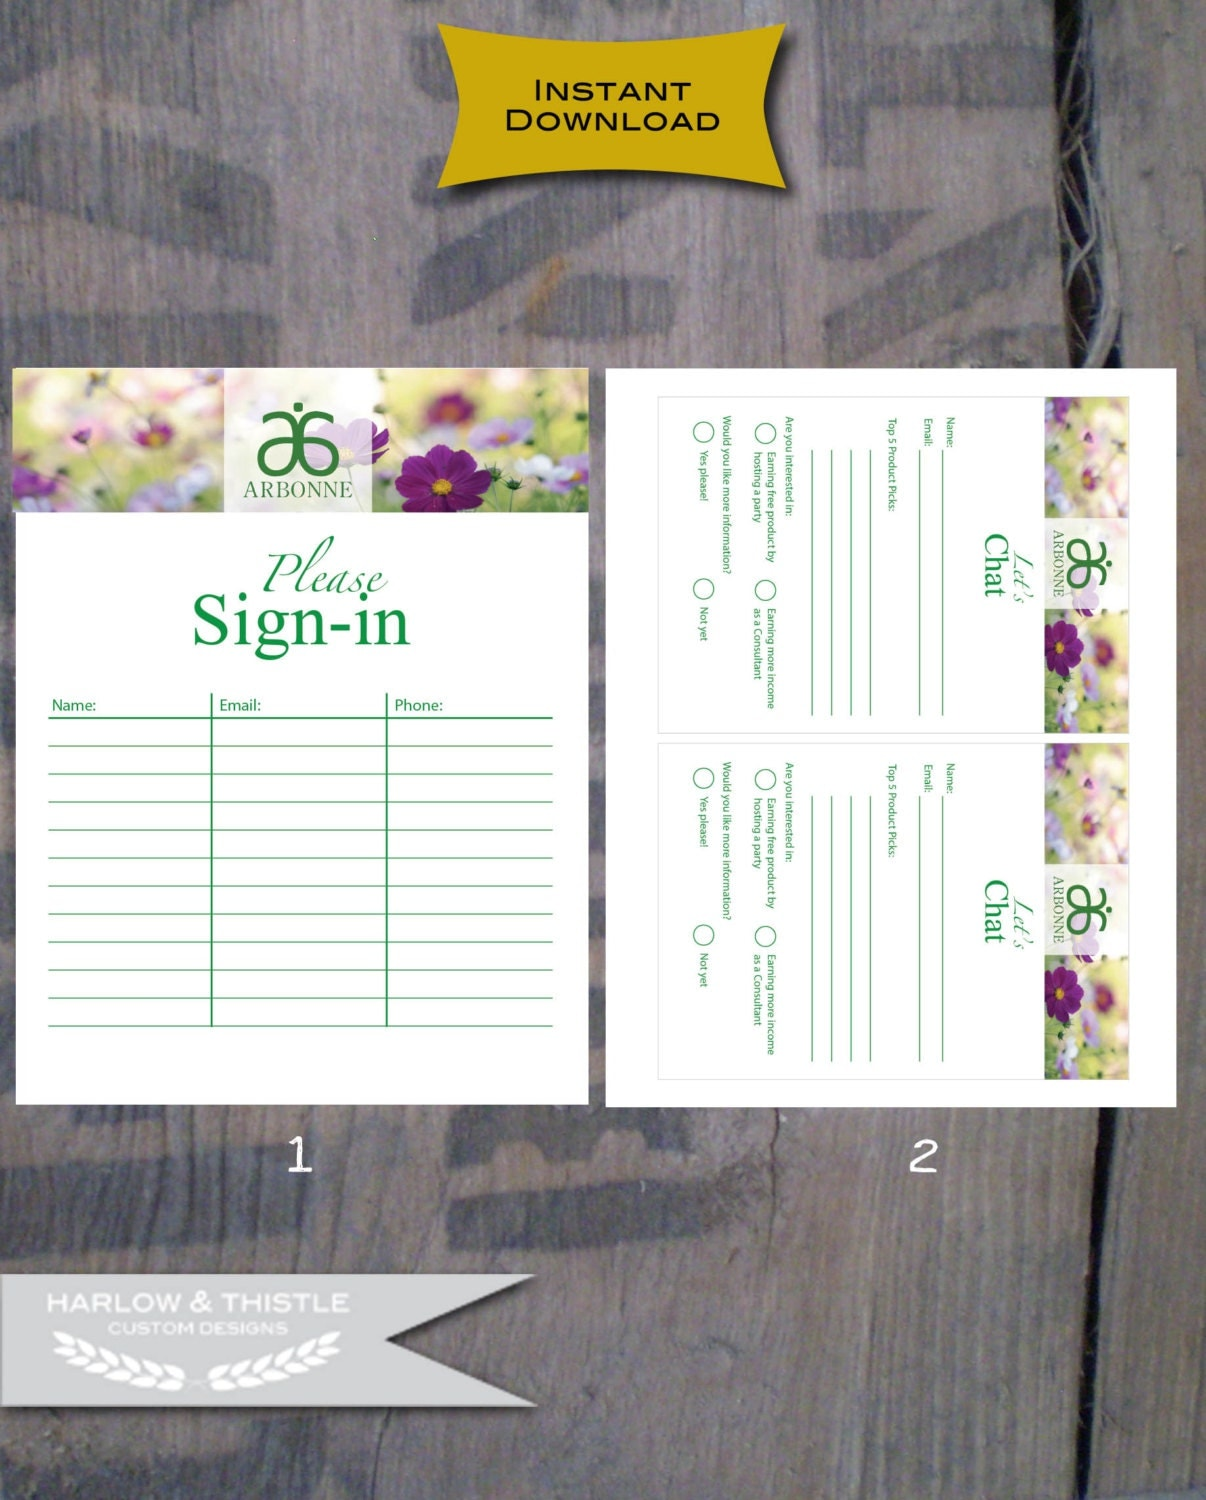 INSTANT DOWNLOAD Printable Arbonne Party items Sign-in